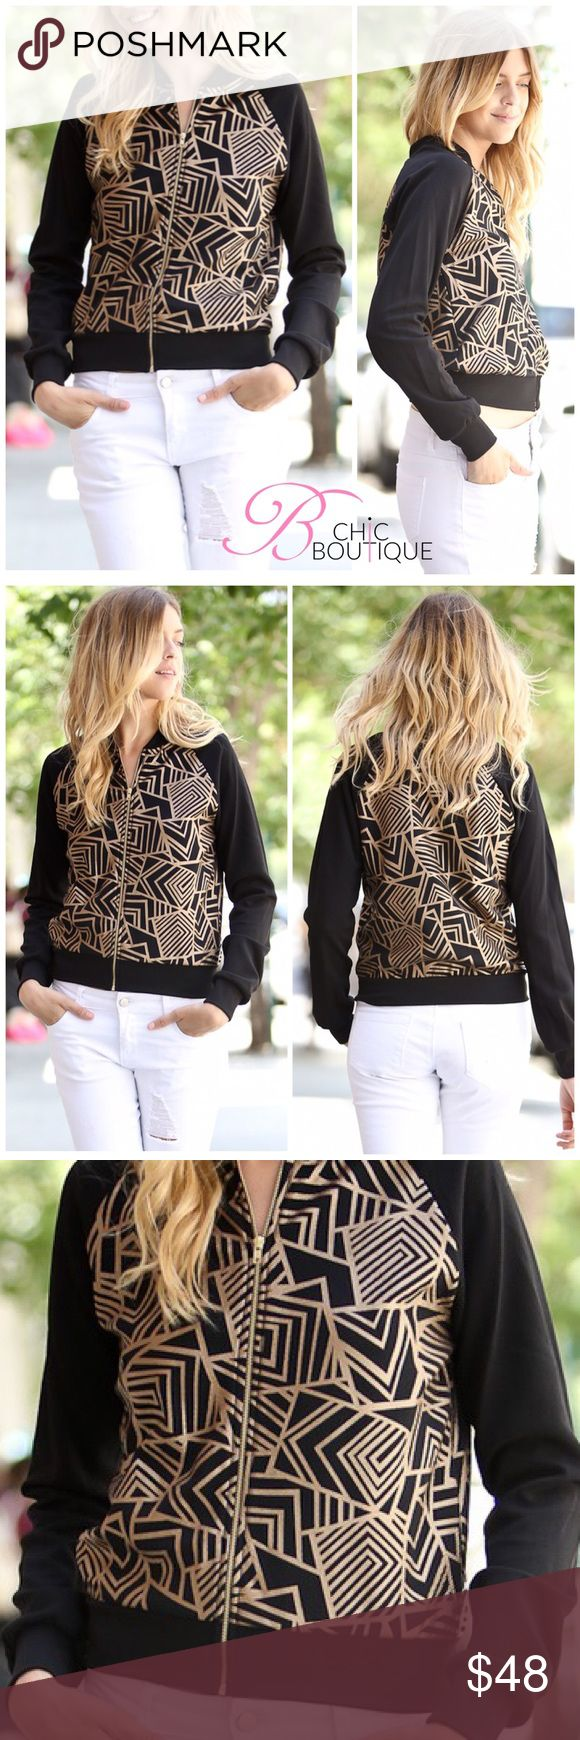 "🆕 Black and Gold Bomber Jacket Kick off the fall/winter season in this unique stylish black bomber jacket featuring gold color abstract patterns. Made of 96/4 polyester-spandex material for that added stretch. Finished with a gold color zipper and a thick bottom hemline. MADE IN USA 🇺🇸  Measurements laying flat Small Bust 17""/ length 21""  Medium Bust 18.5""/ length 21.5""  Large Bust 20""/ length 22""  ✔️ Bundle Discounts  ✔️ Reasonable Offers through offer button  ❌ Low Balling  ❌ Trades…"